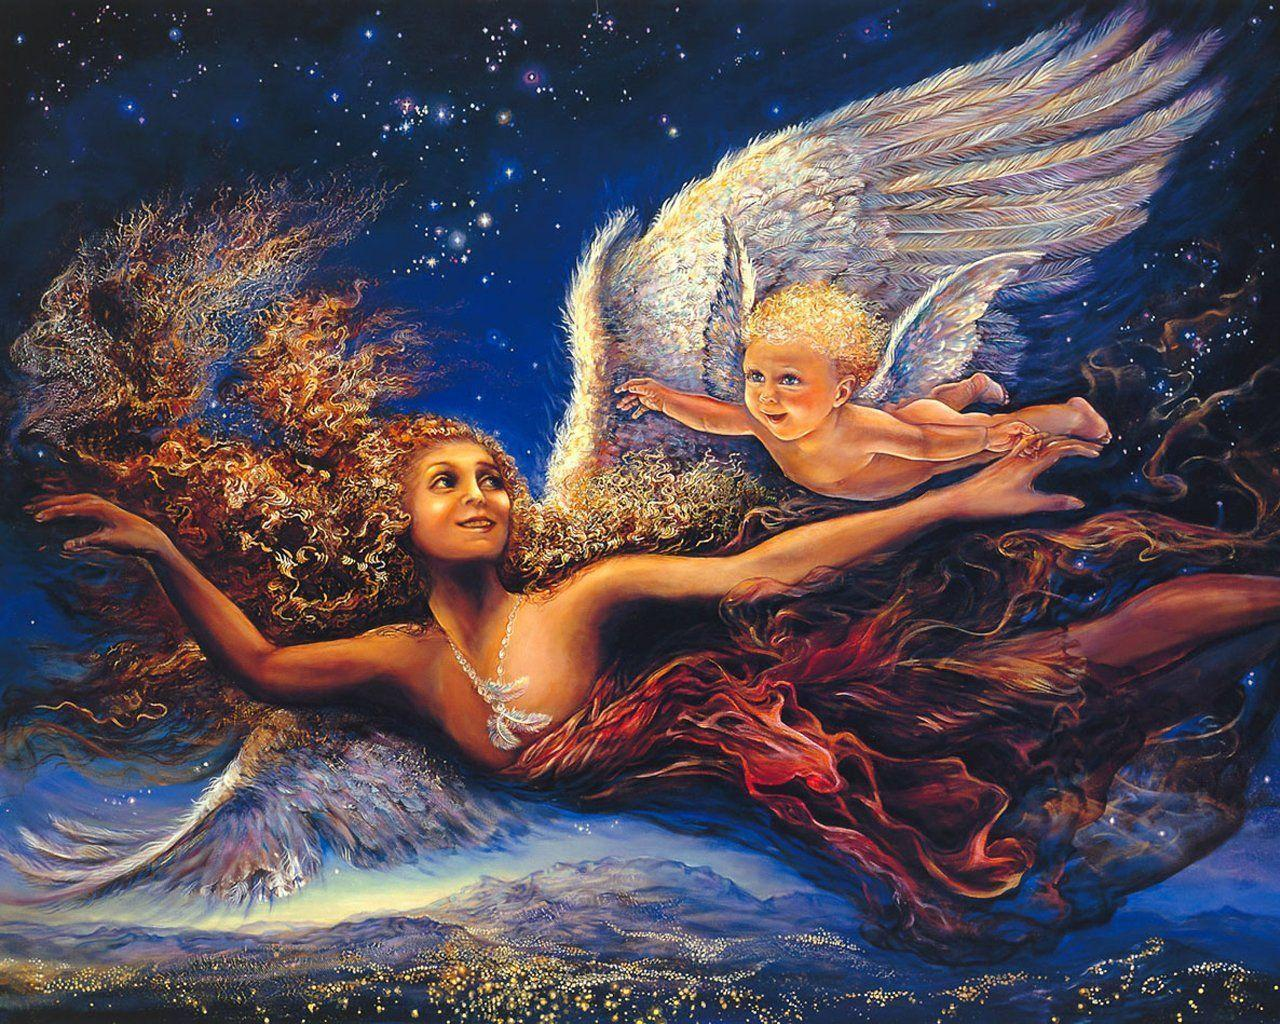 American Girl Doll Wallpaper Josephine Wall Wallpapers Wallpaper Cave